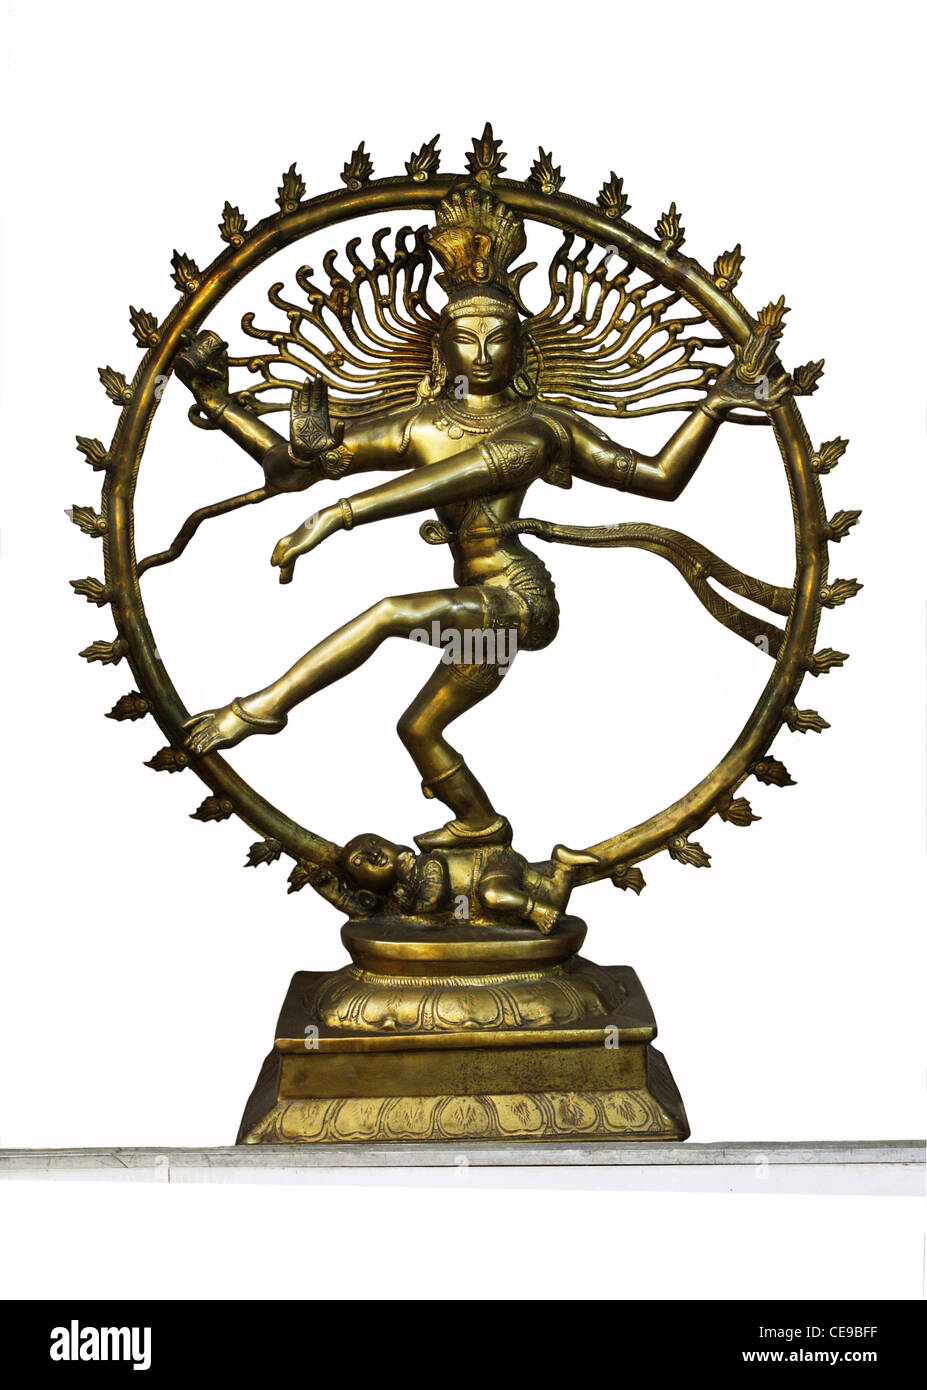 Shiva , the lord of dance depicted in the Nataraja statue - Stock Image